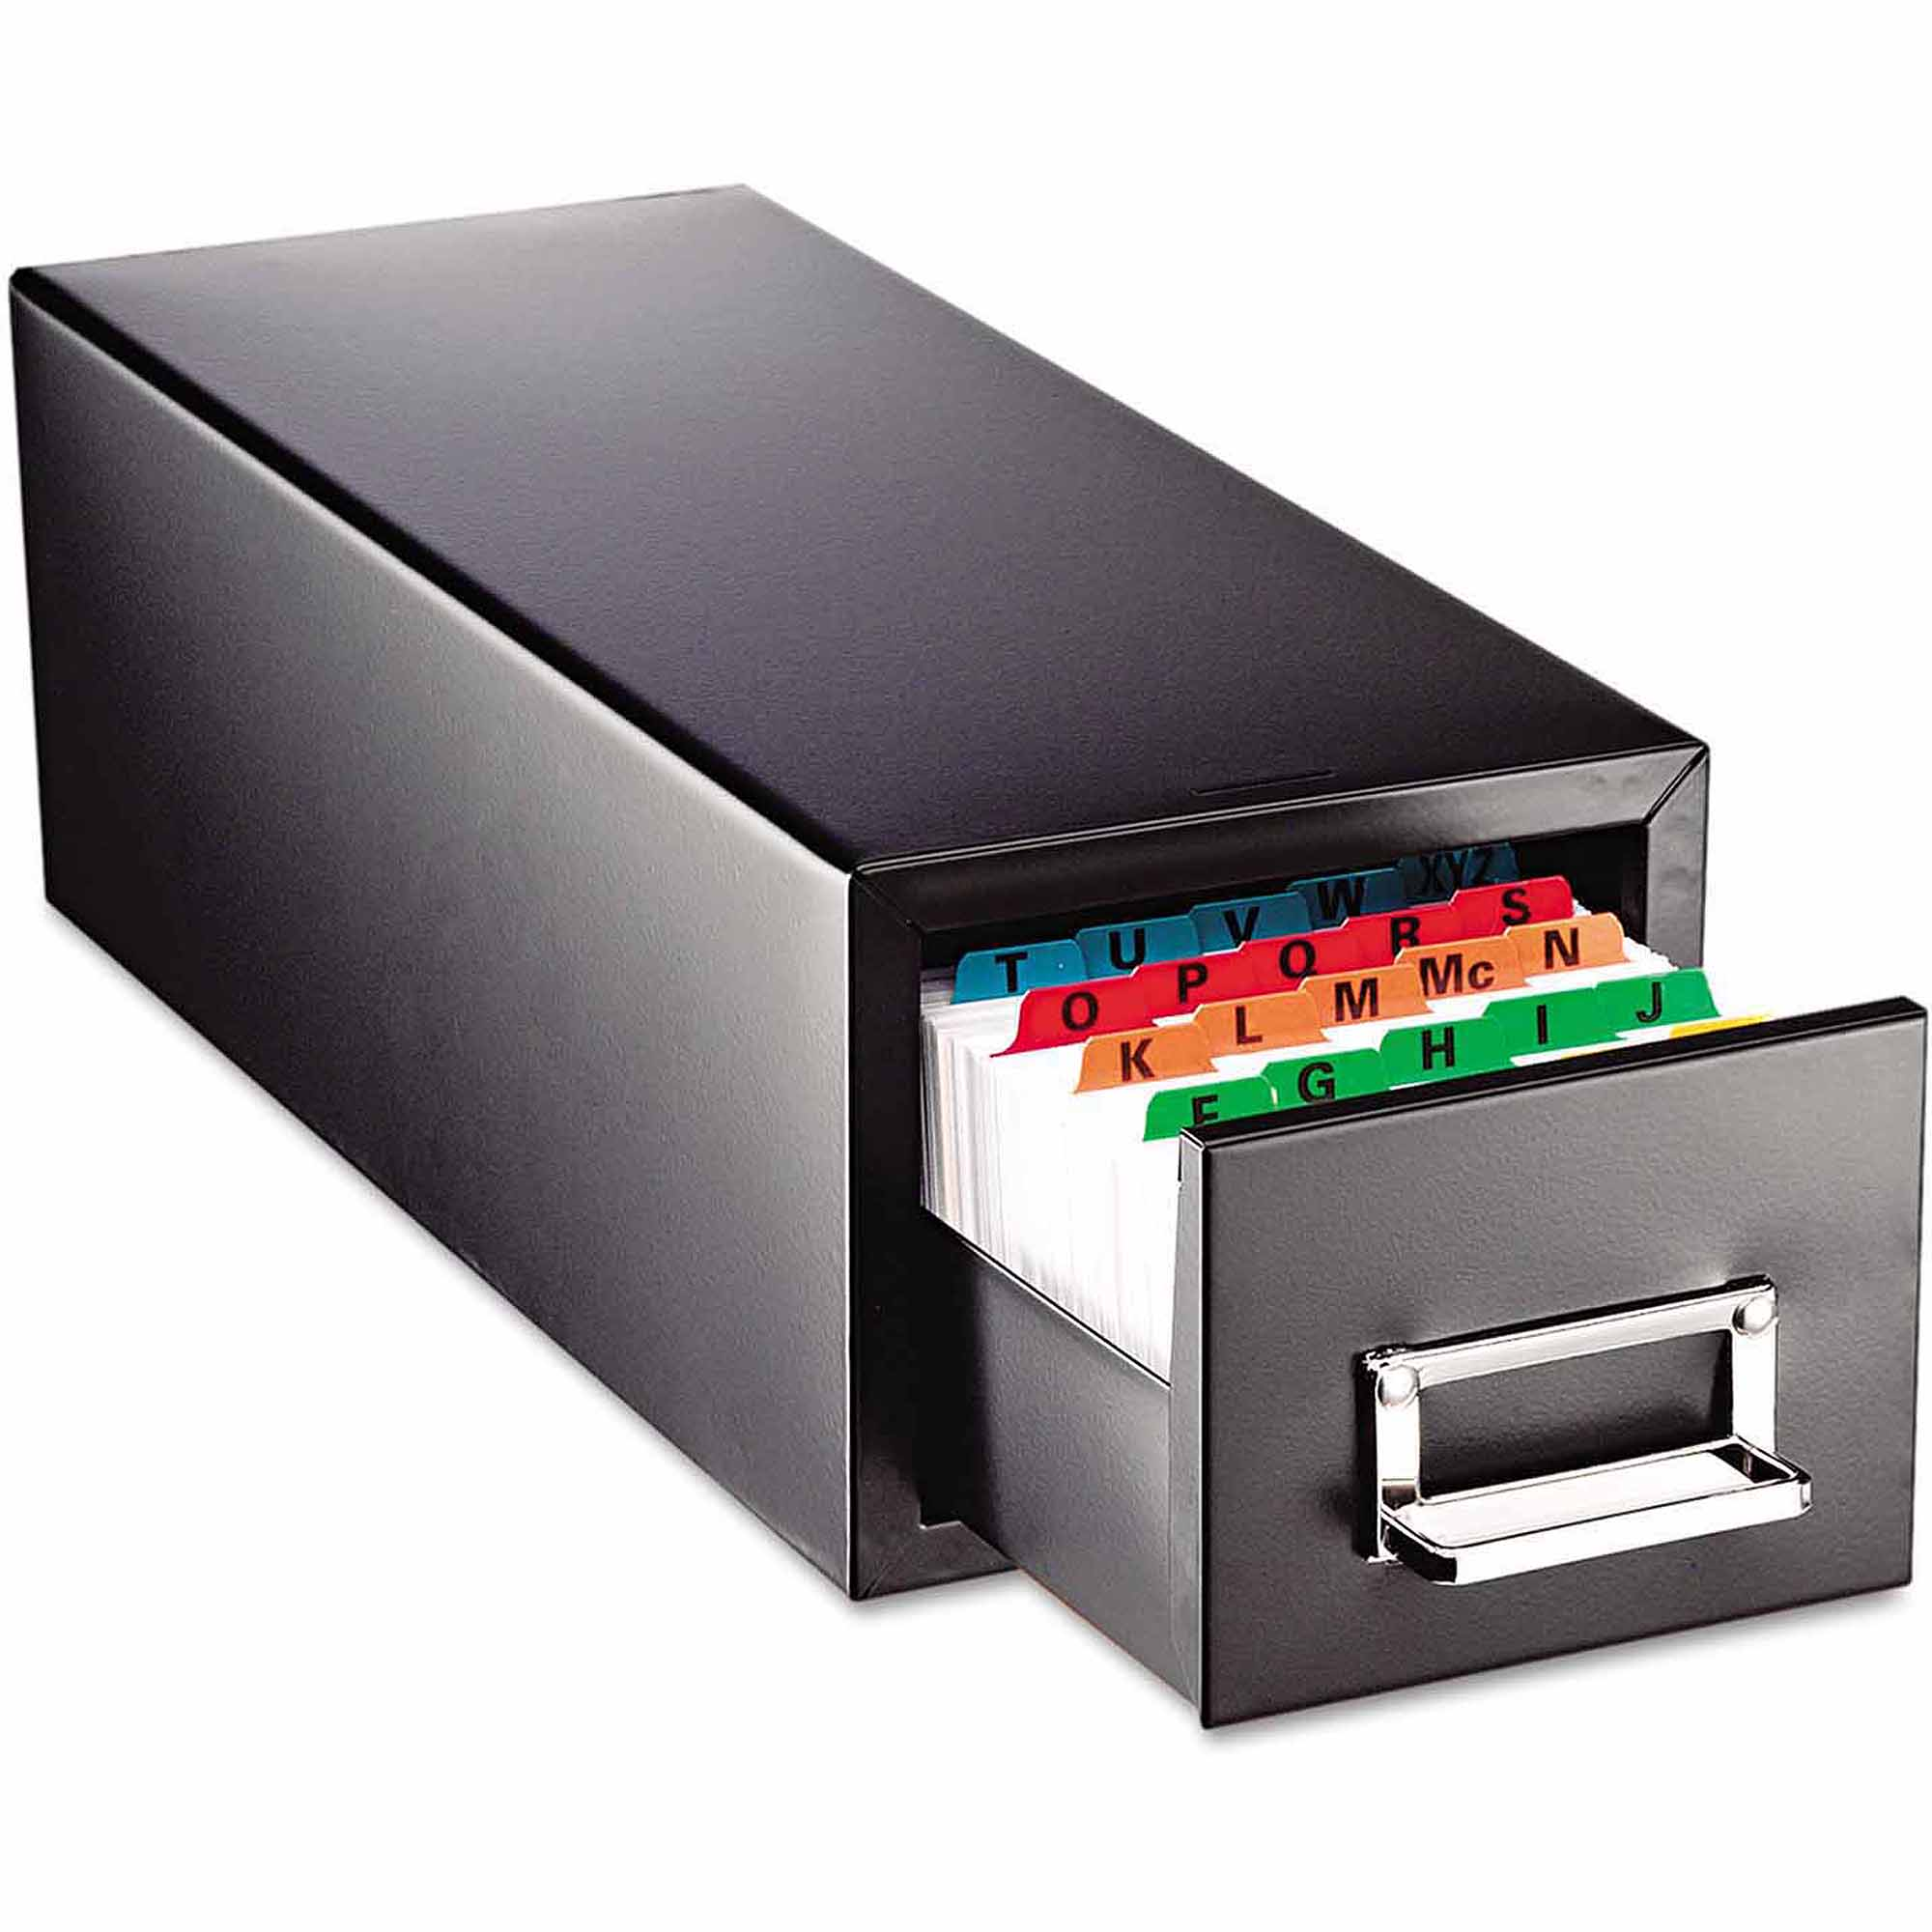 "SteelMaster Drawer Card Cabinet, Holds 1,500 5"" x 8"" cards"